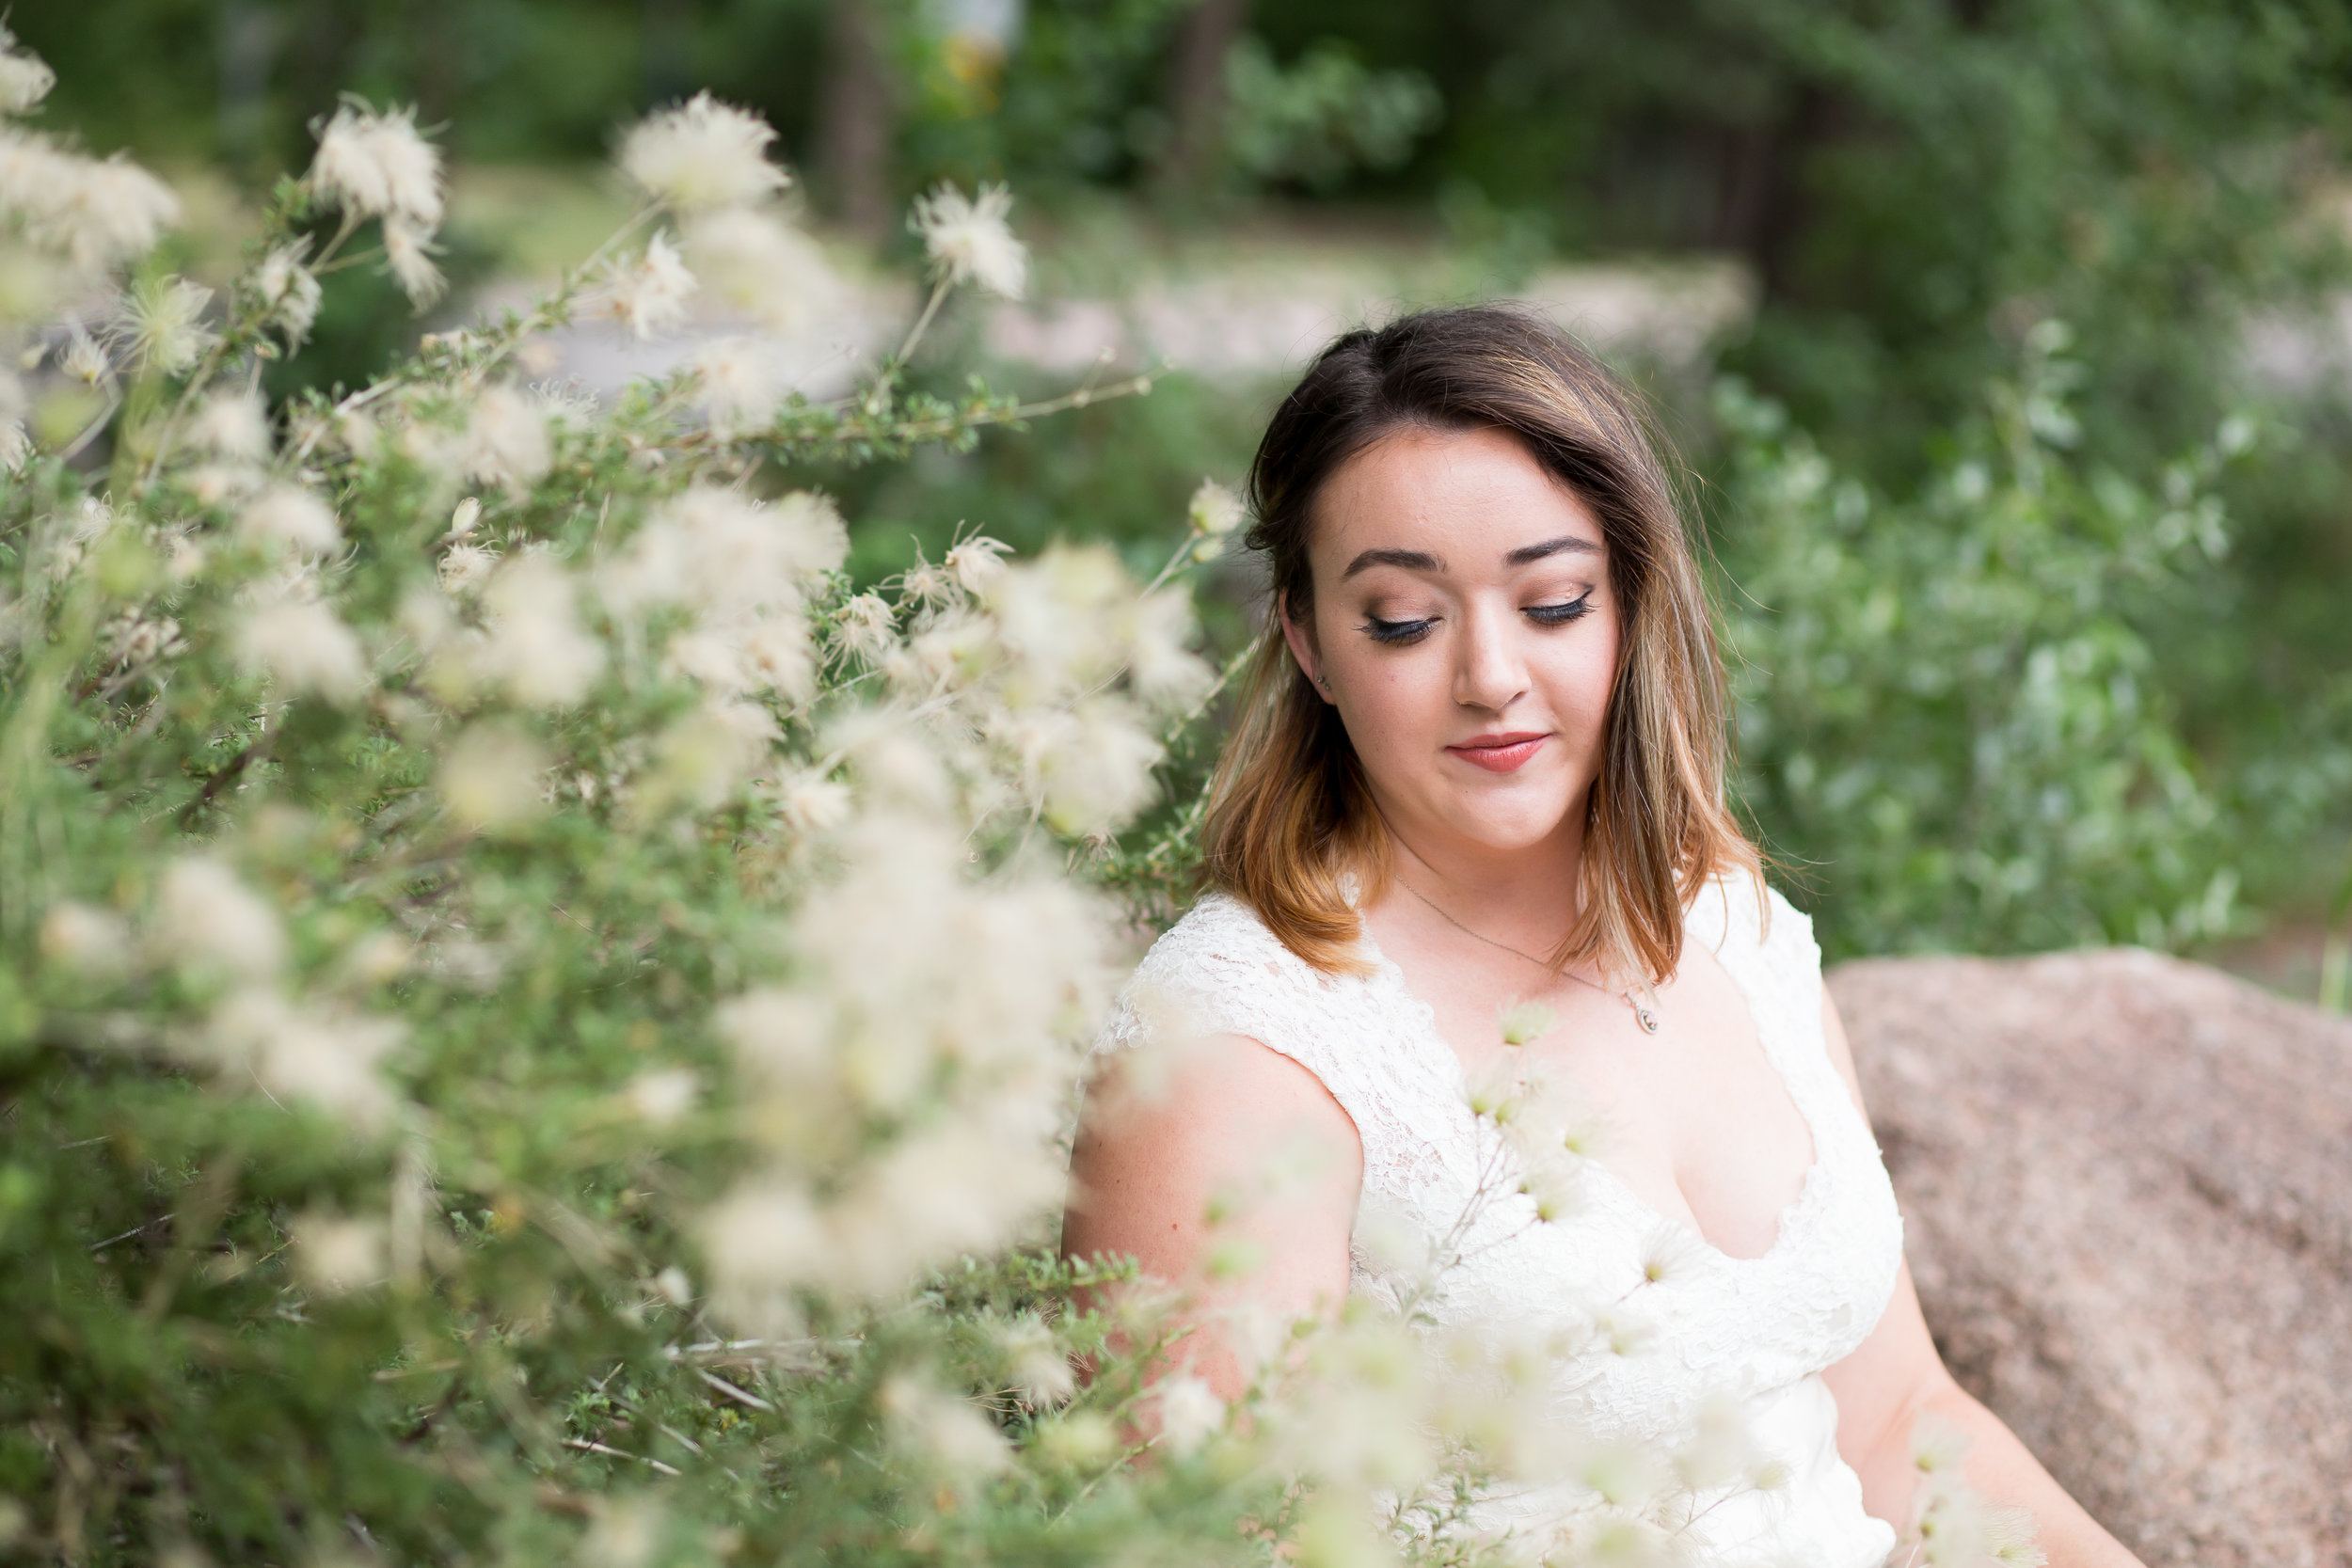 Colorado Bride Bridal Portraits Stacy Carosa Photography lace dress pastel flowers Cheyenne Canyon